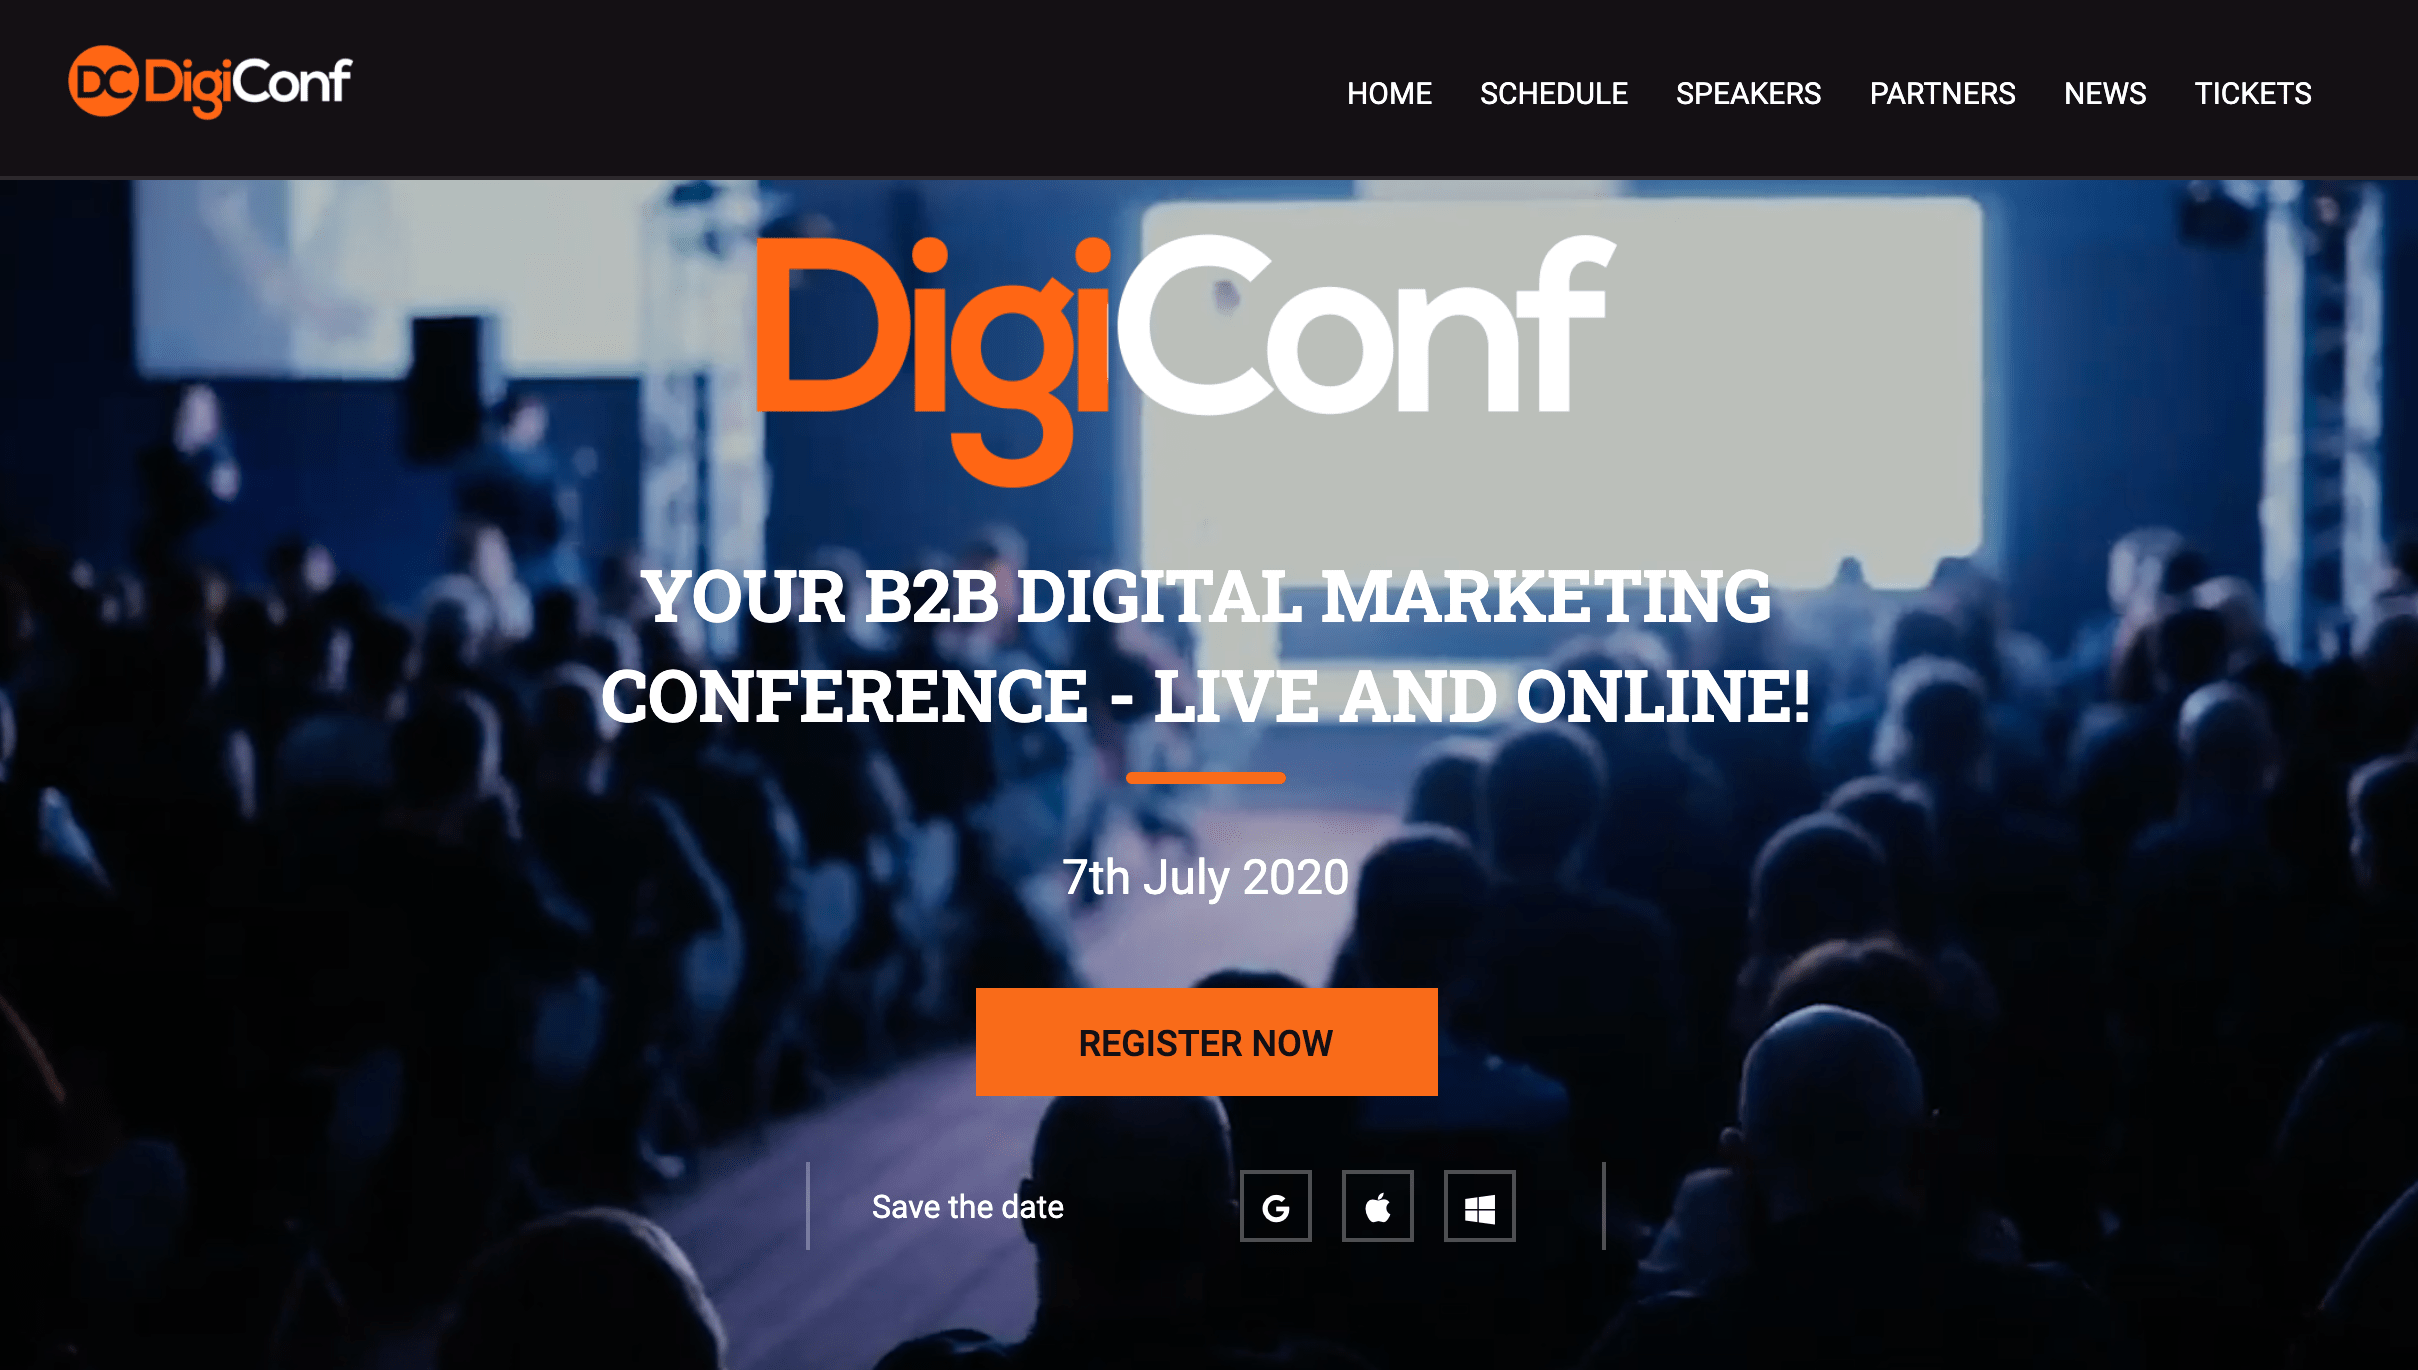 Digiconf is a virtual summit and conference where attendees can network with speakers and each other before and after the event